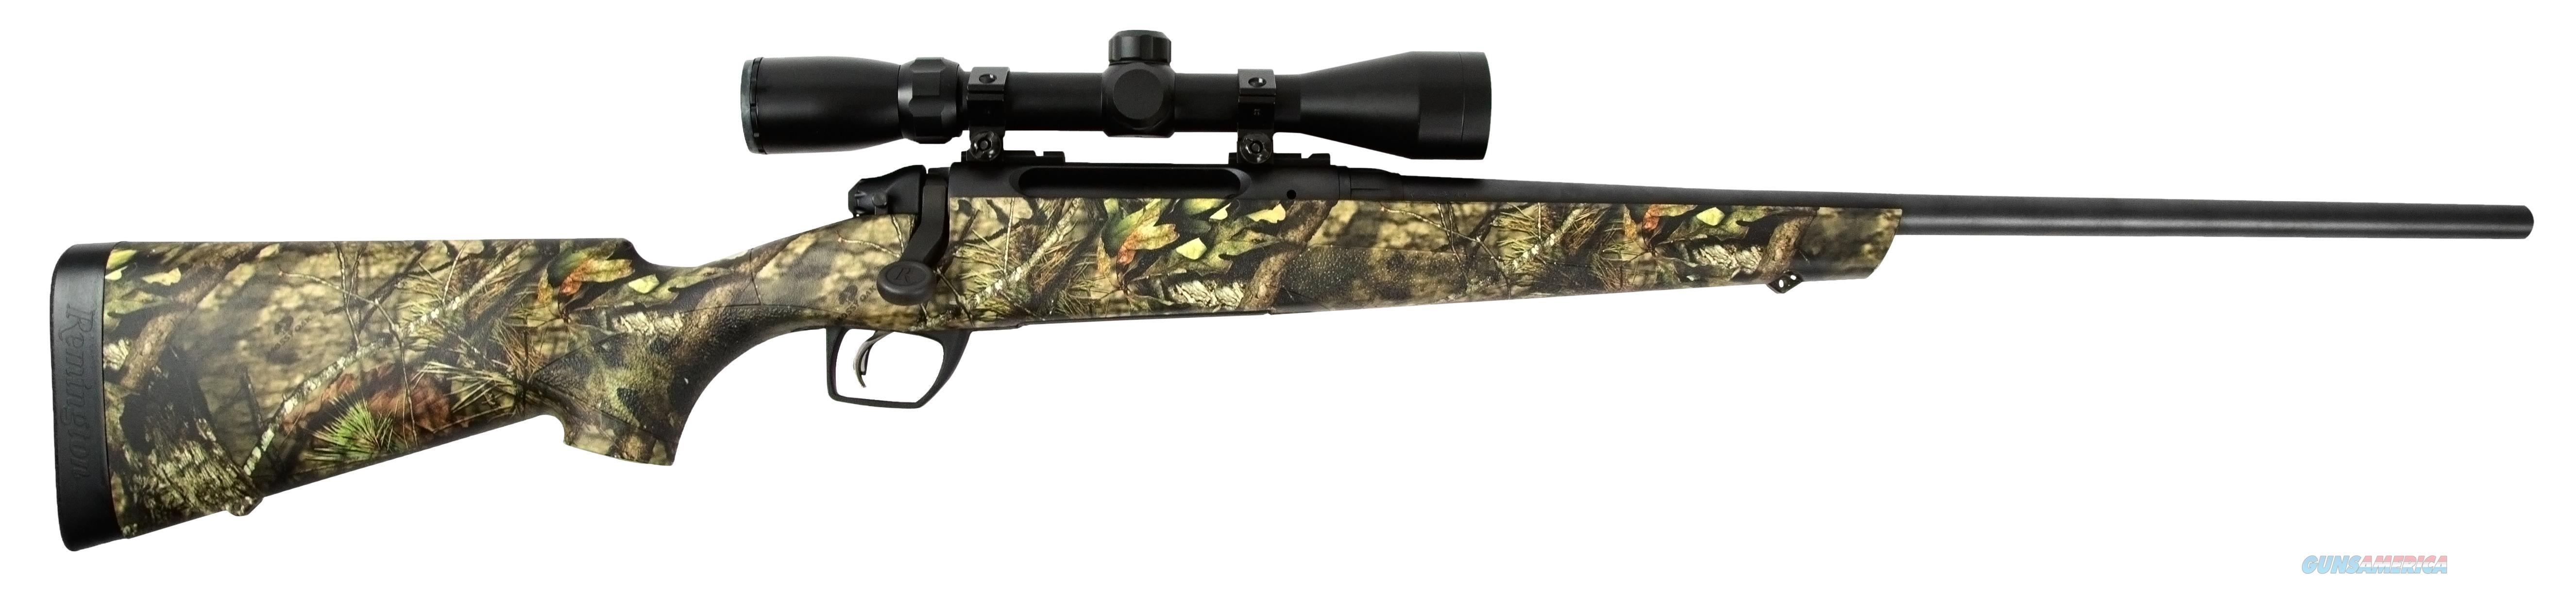 "REMINGTON 783 MOBUC PKG 30-06 22"" 85753  Guns > Rifles > Remington Rifles - Modern > Bolt Action Non-Model 700 > Sporting"